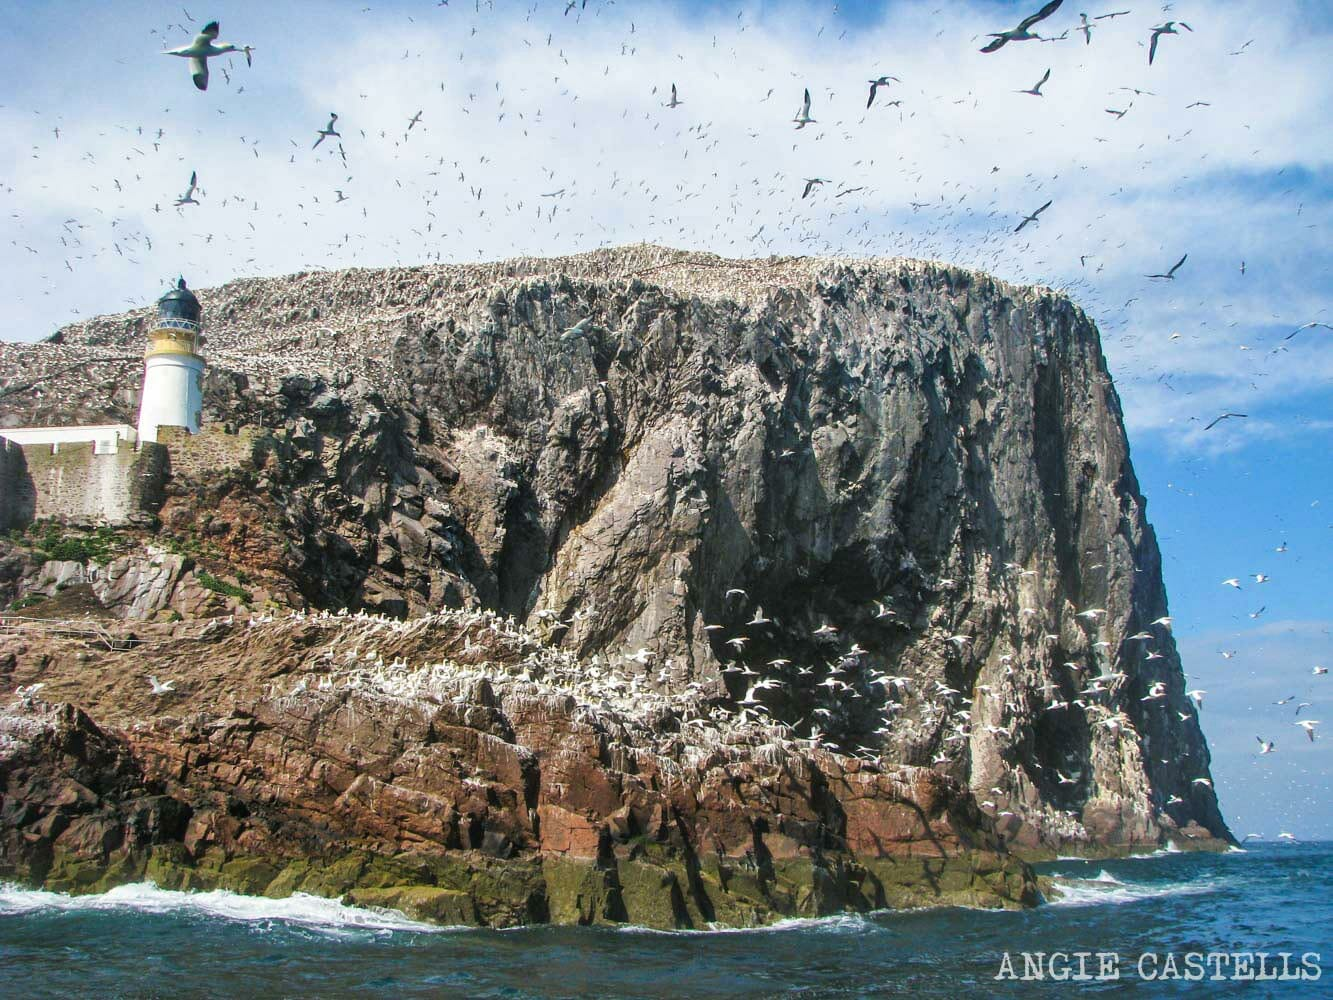 Barco-Bass-Rock-North-Berwick-Excursion-desde-Edimburgo-1500